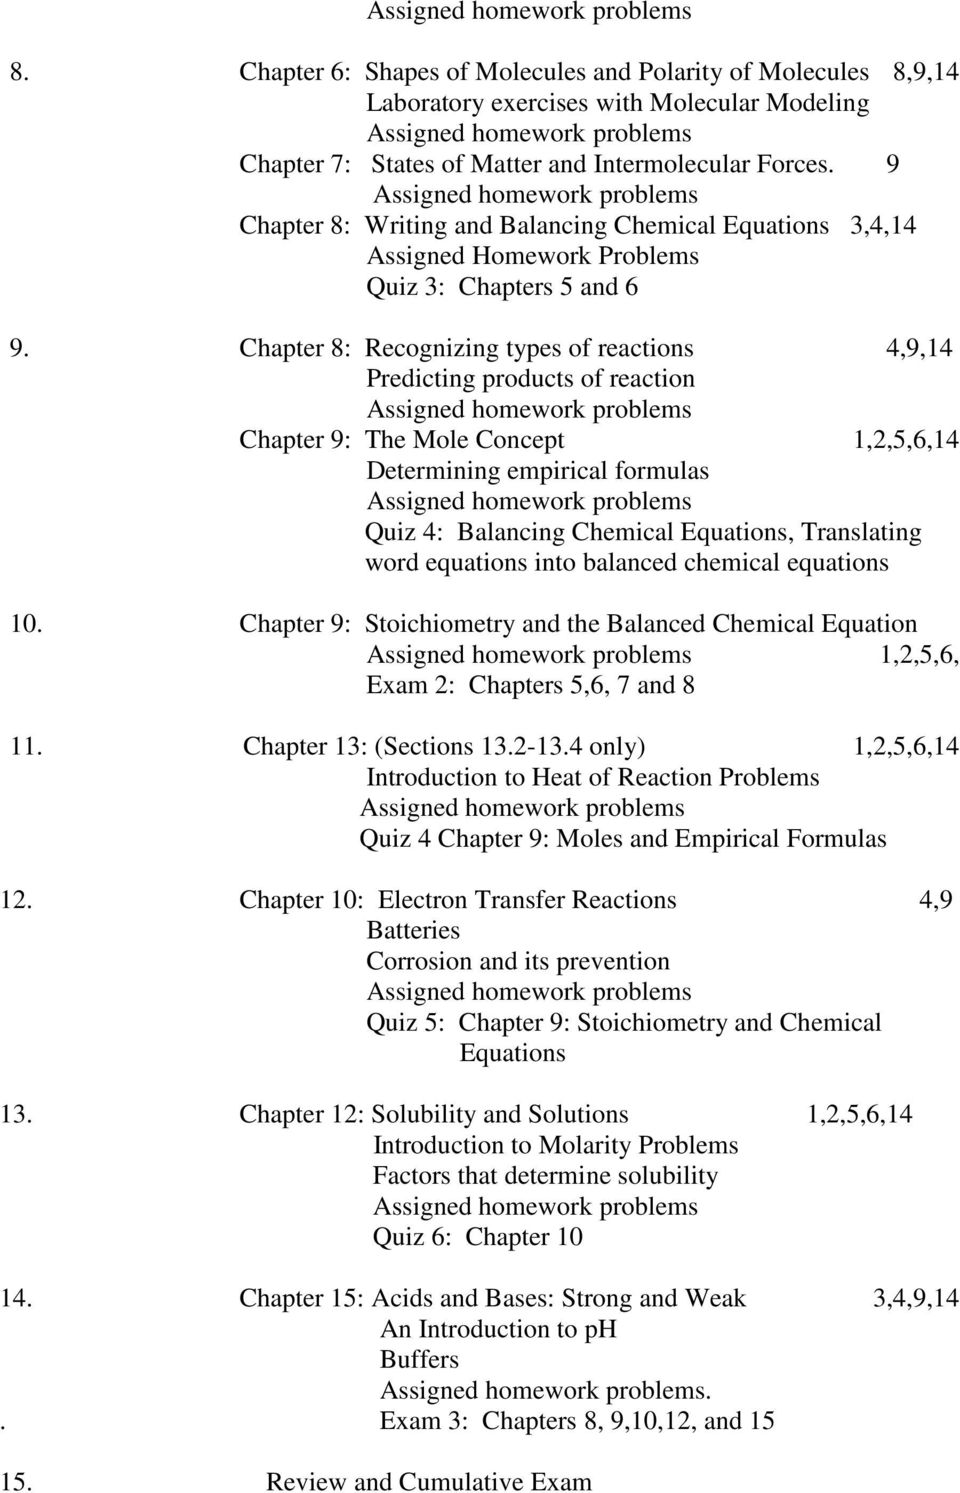 Chapter 8: Recognizing types of reactions 4,9,14 Predicting products of reaction Chapter 9: The Mole Concept 1,2,5,6,14 Determining empirical formulas Quiz 4: Balancing Chemical Equations,